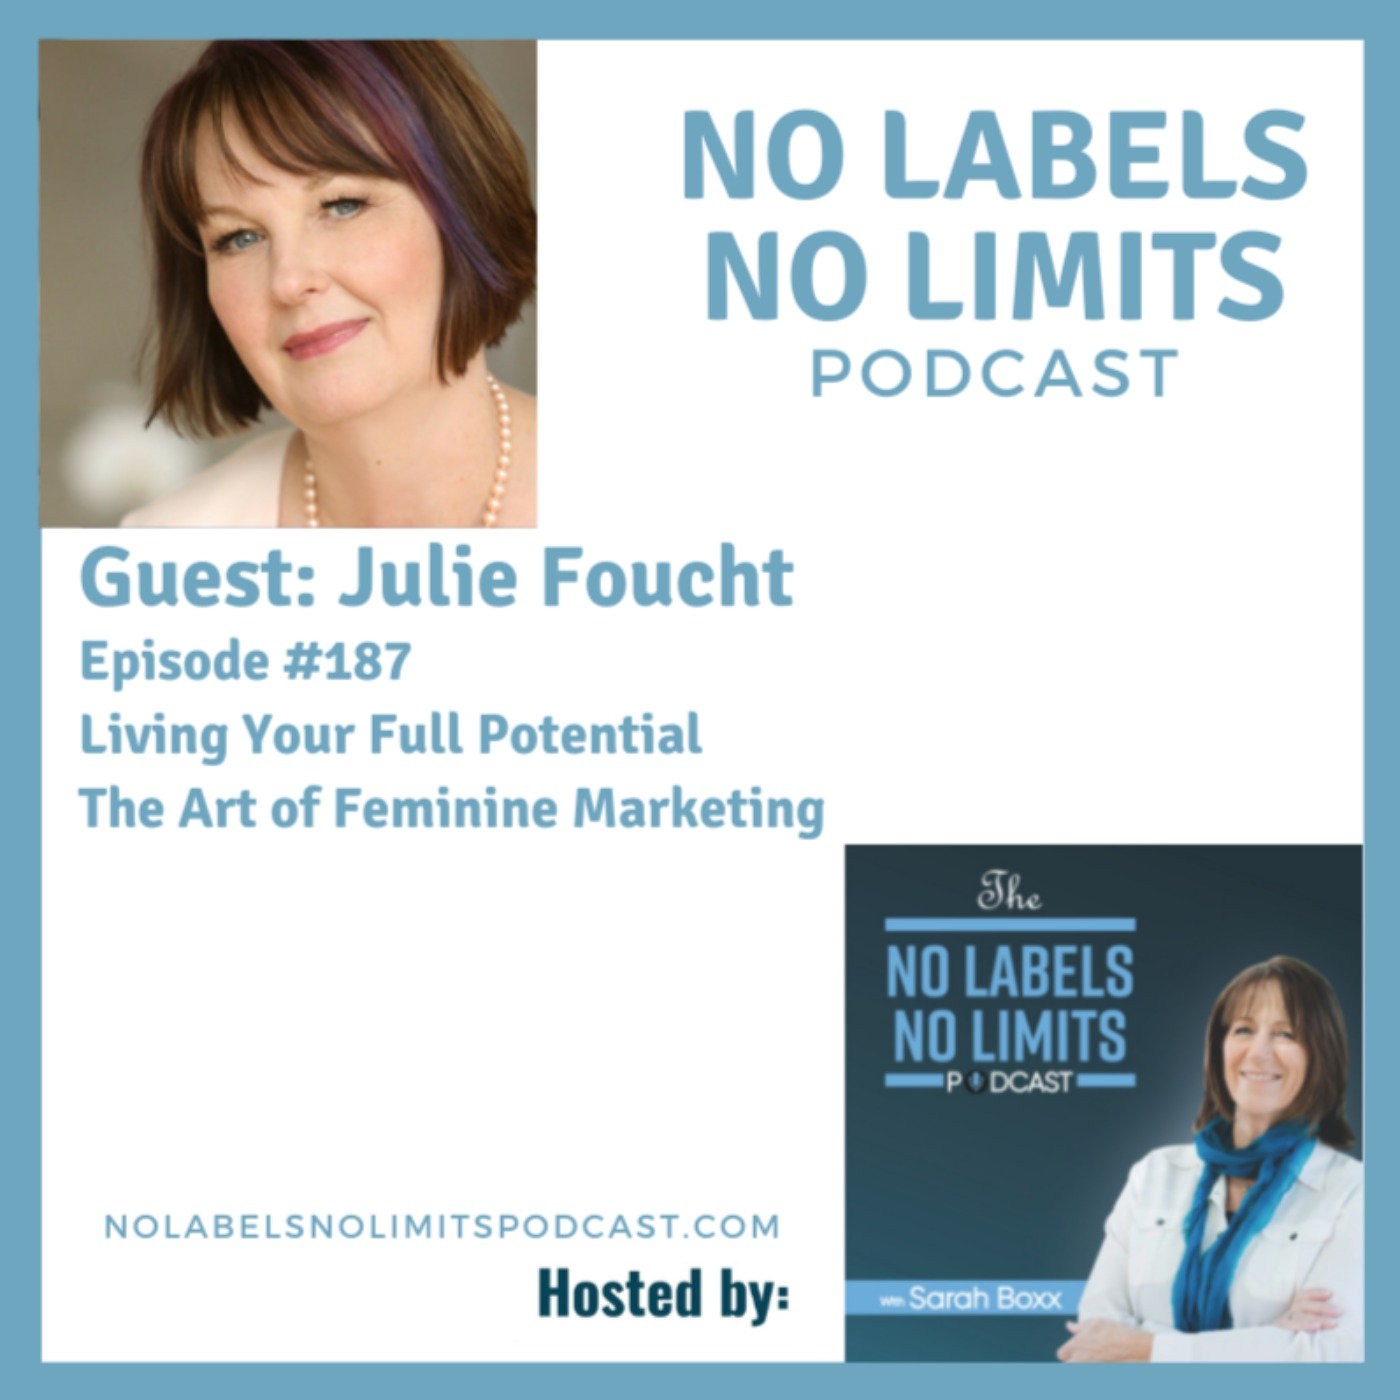 187 - Living Your Full Potential with Julie Foucht and Sarah Boxx